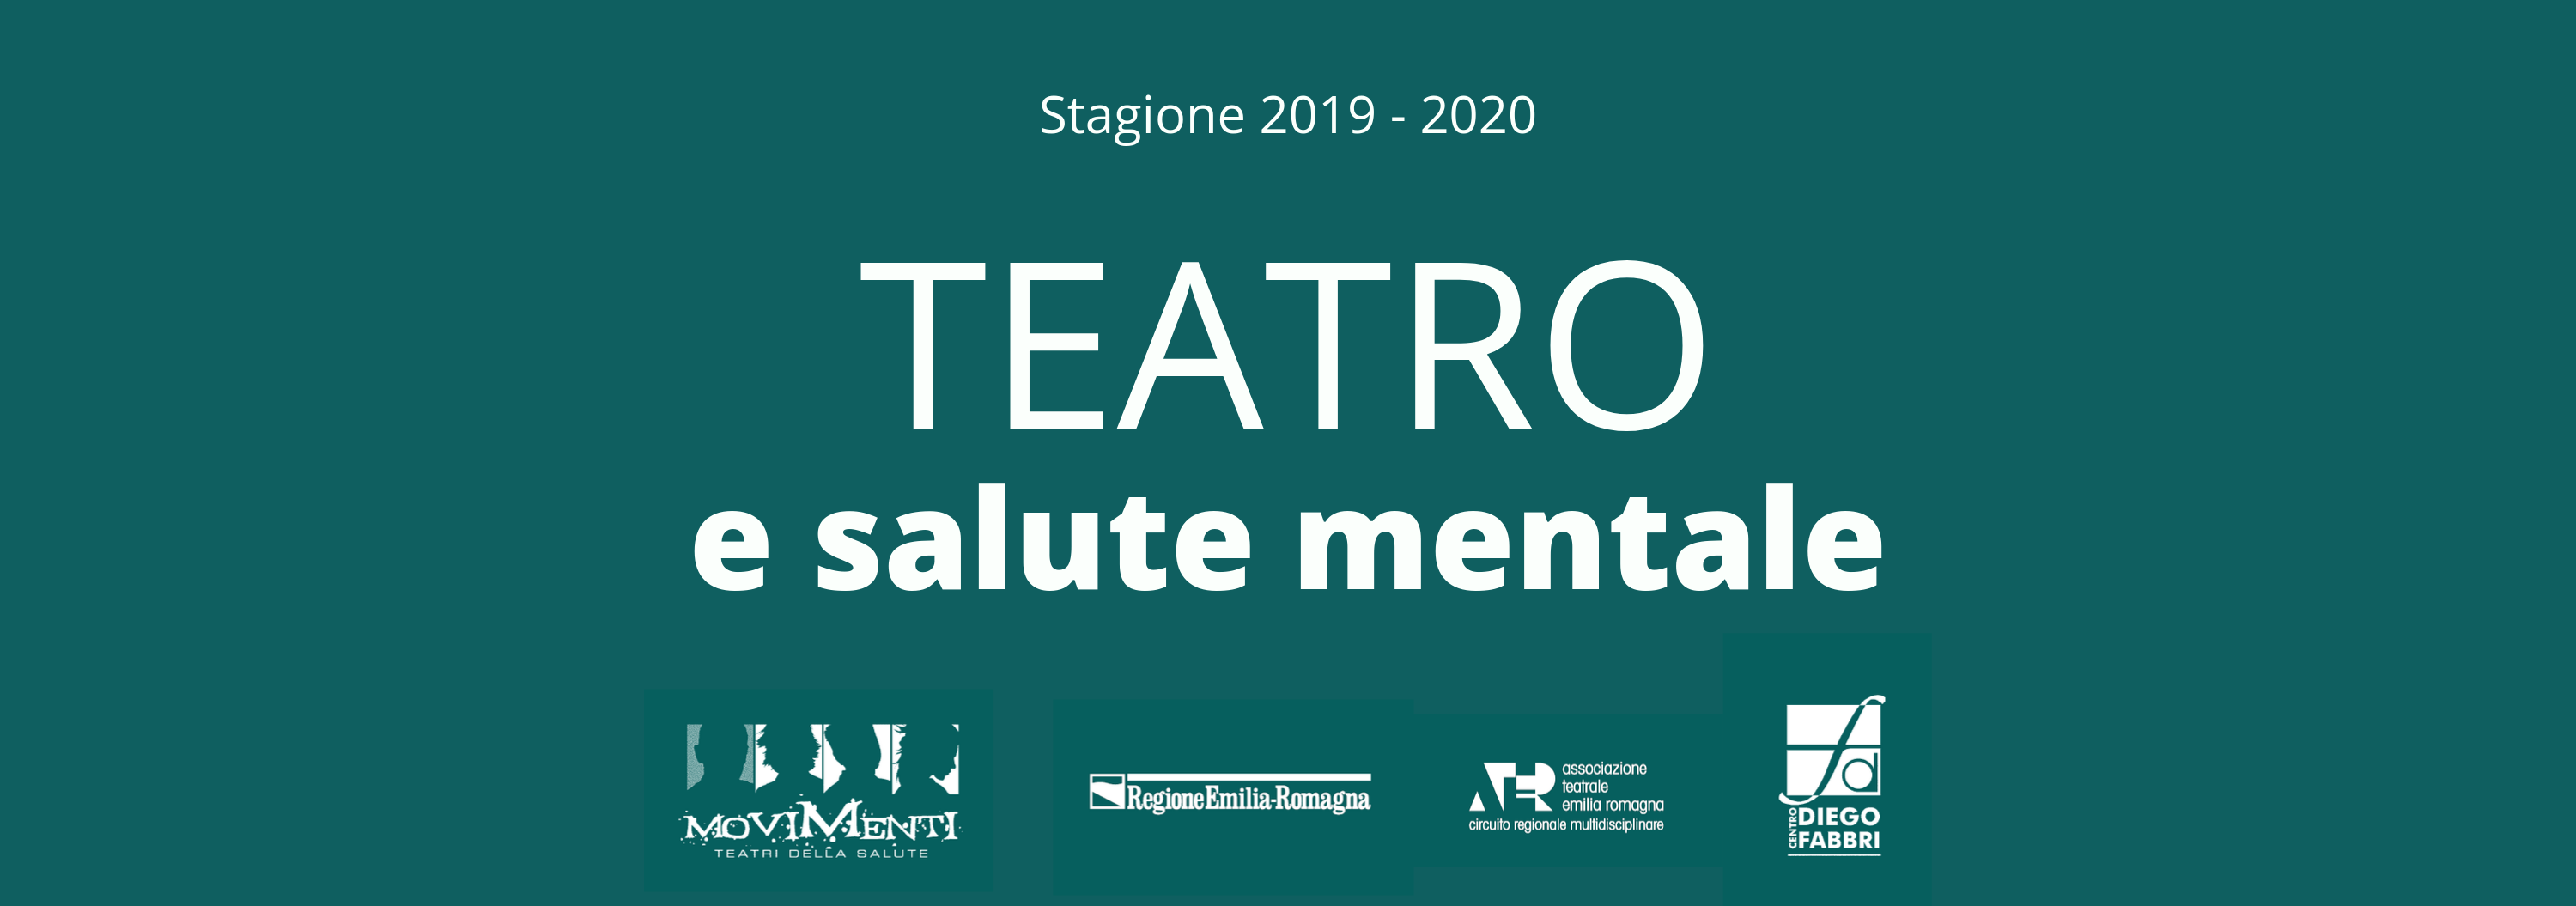 stagione 2019 2020